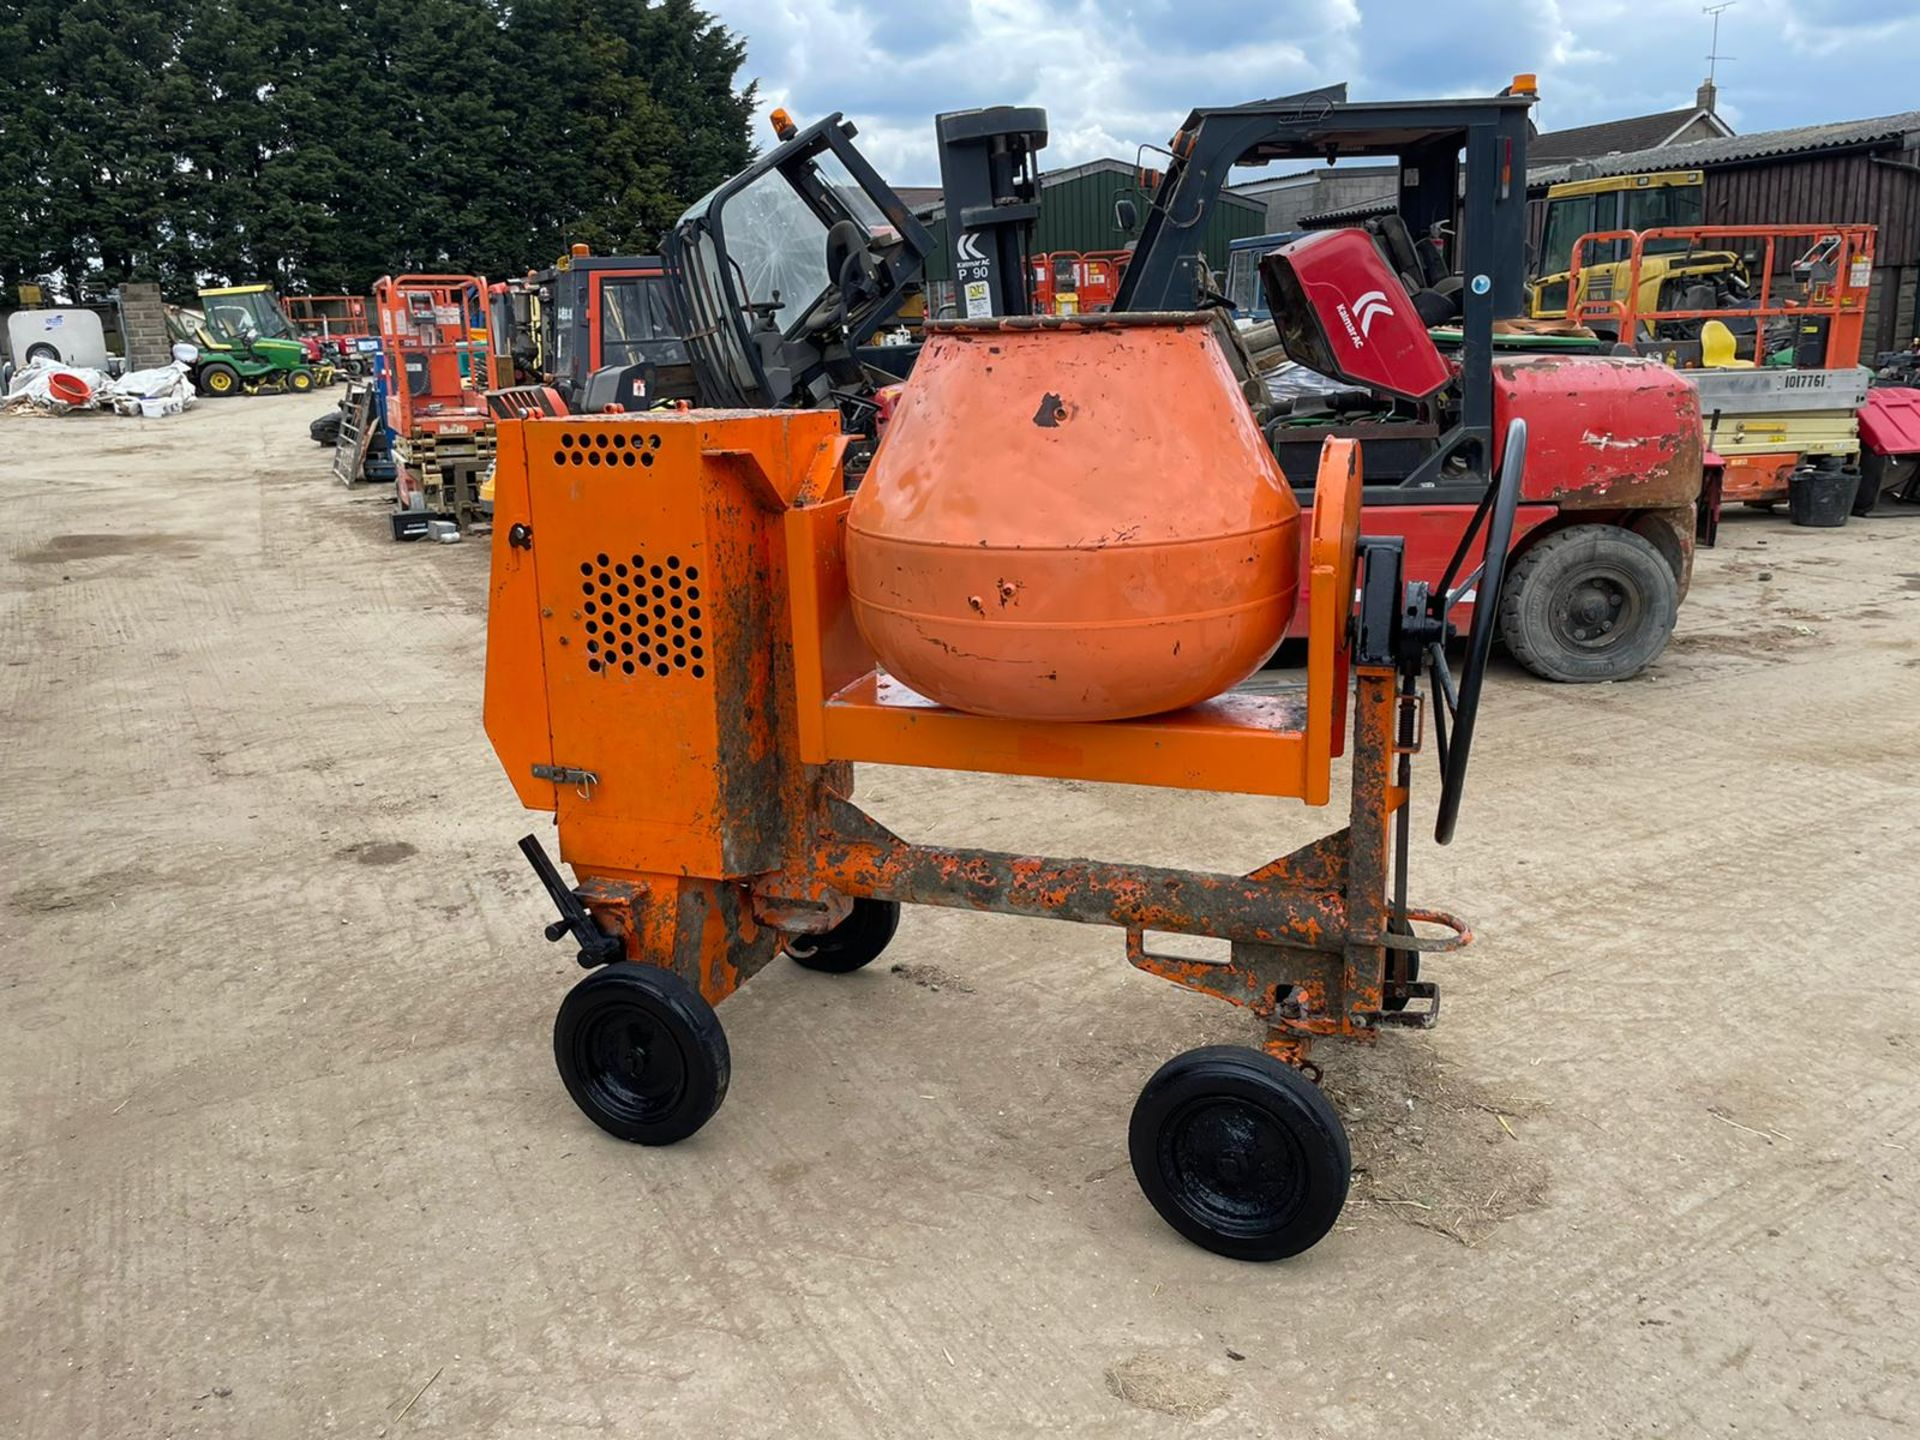 BELLE PREMIER 100XT CONCRETE MIXER, YANMAR DIESEL ENGINE, GOOD COMPRESSION *NO VAT*